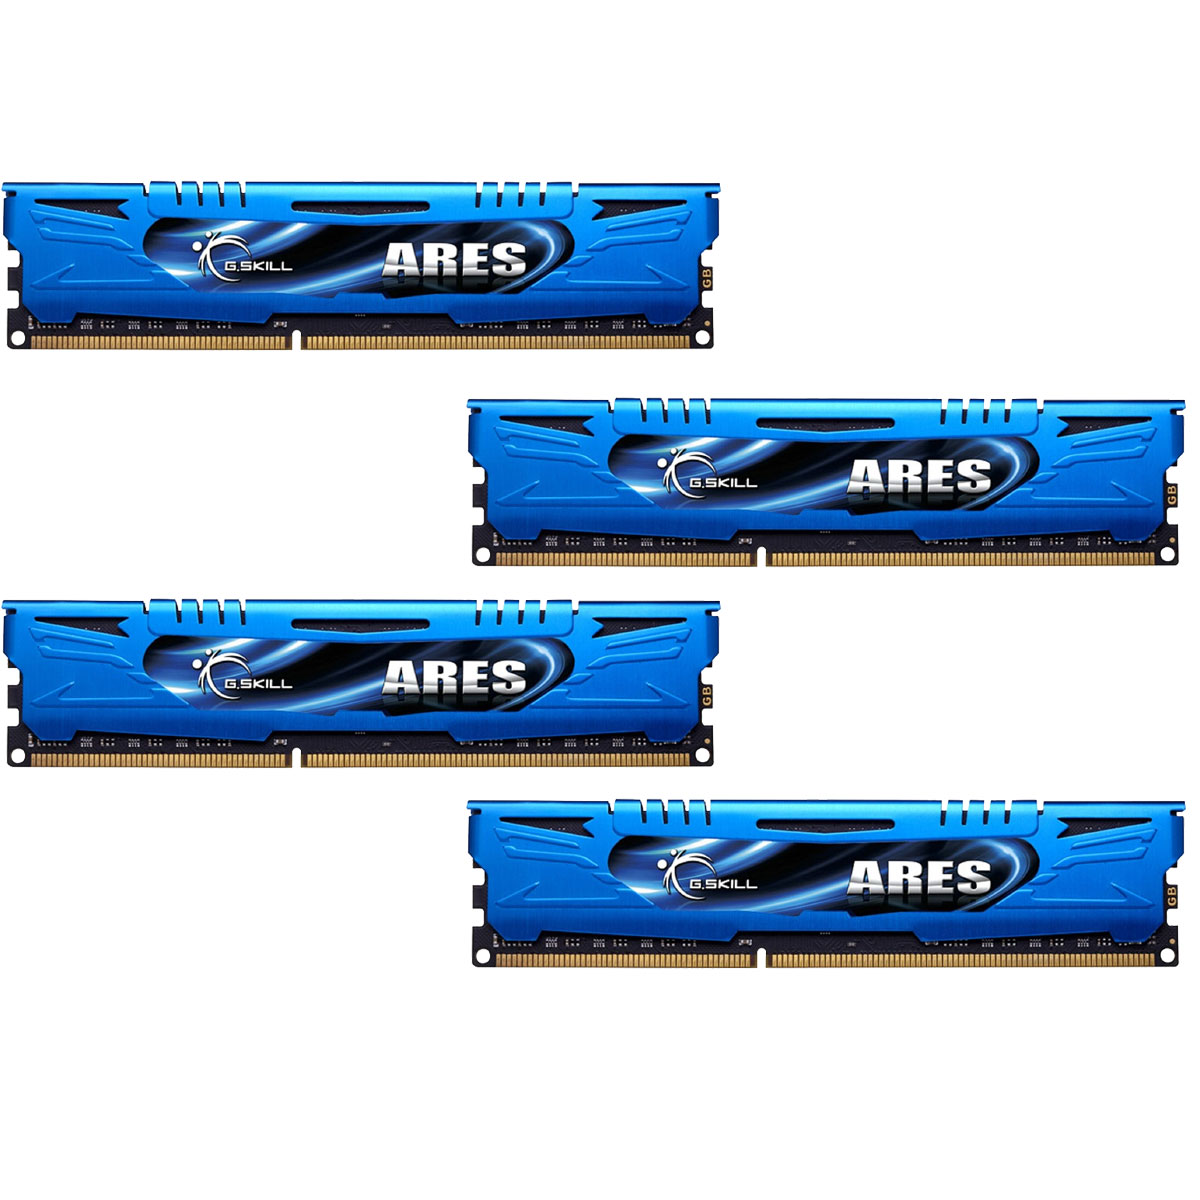 Mémoire PC G.Skill Ares Blue Series 16 Go (4 x 4 Go) DDR3 1600 MHz CL9 Kit Quad Channel DDR3 PC3-12800 - F3-1600C9Q-16GAB (garantie à vie par G.Skill)